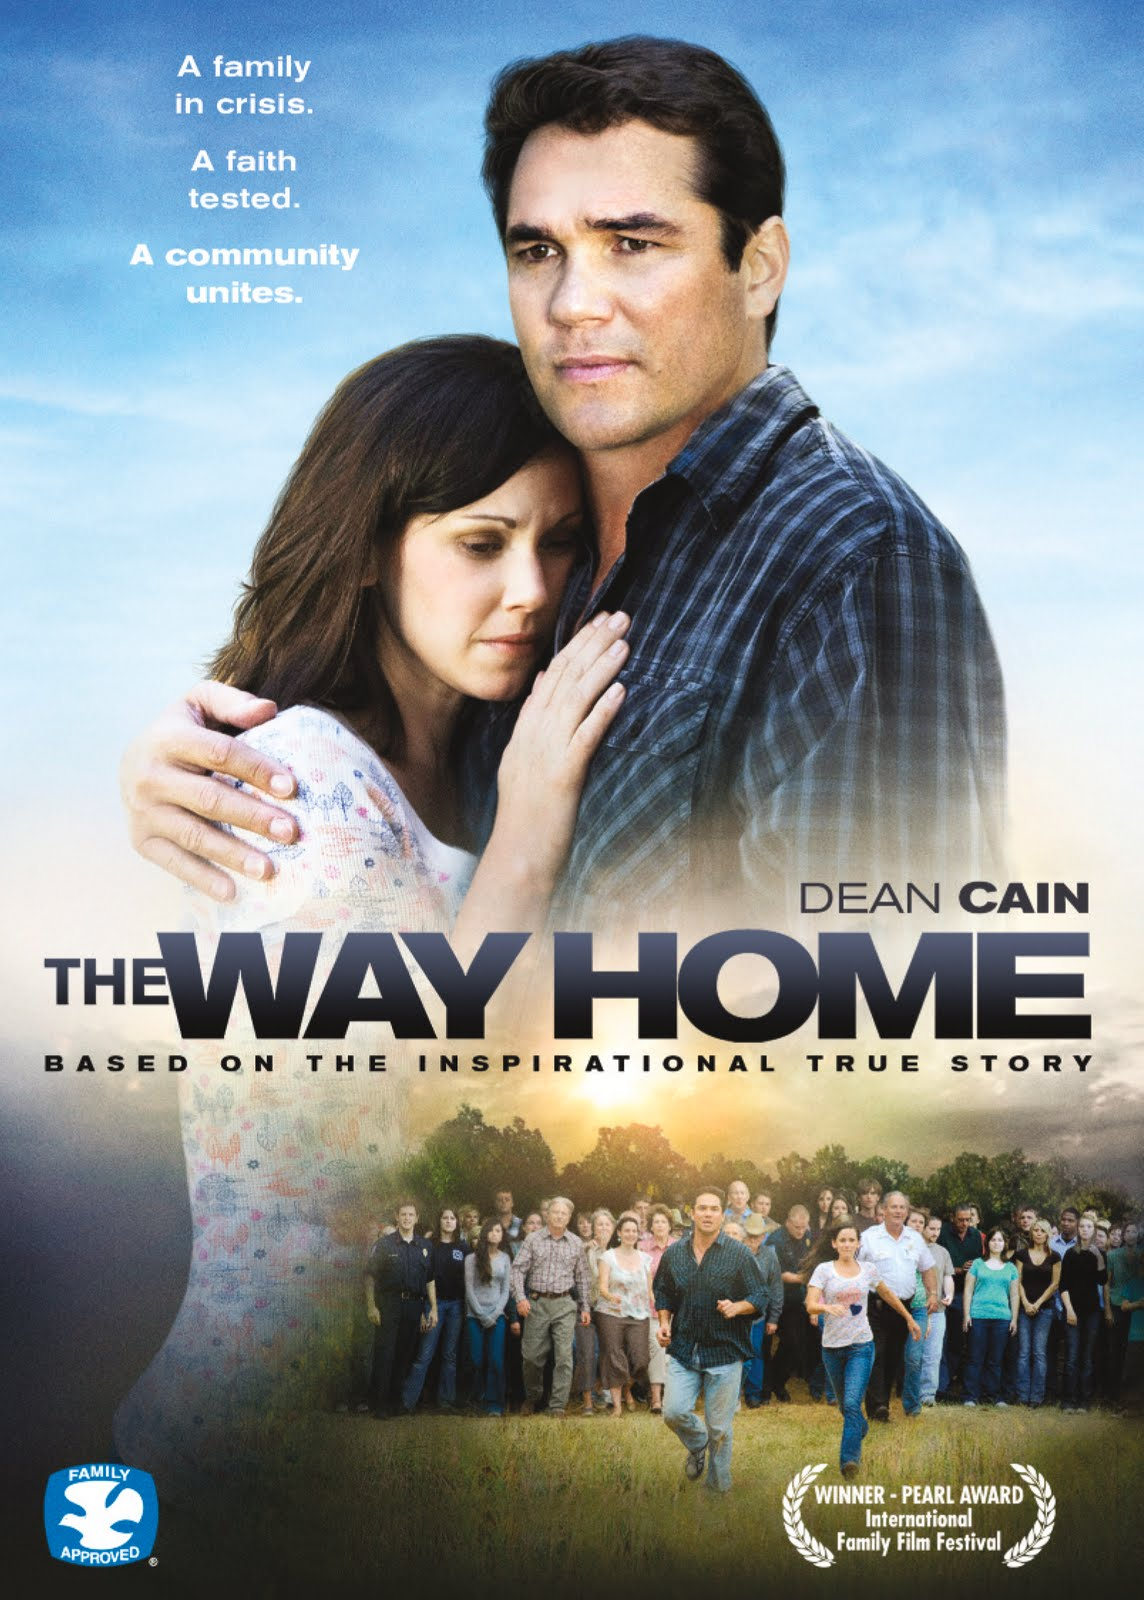 The Way Home movie